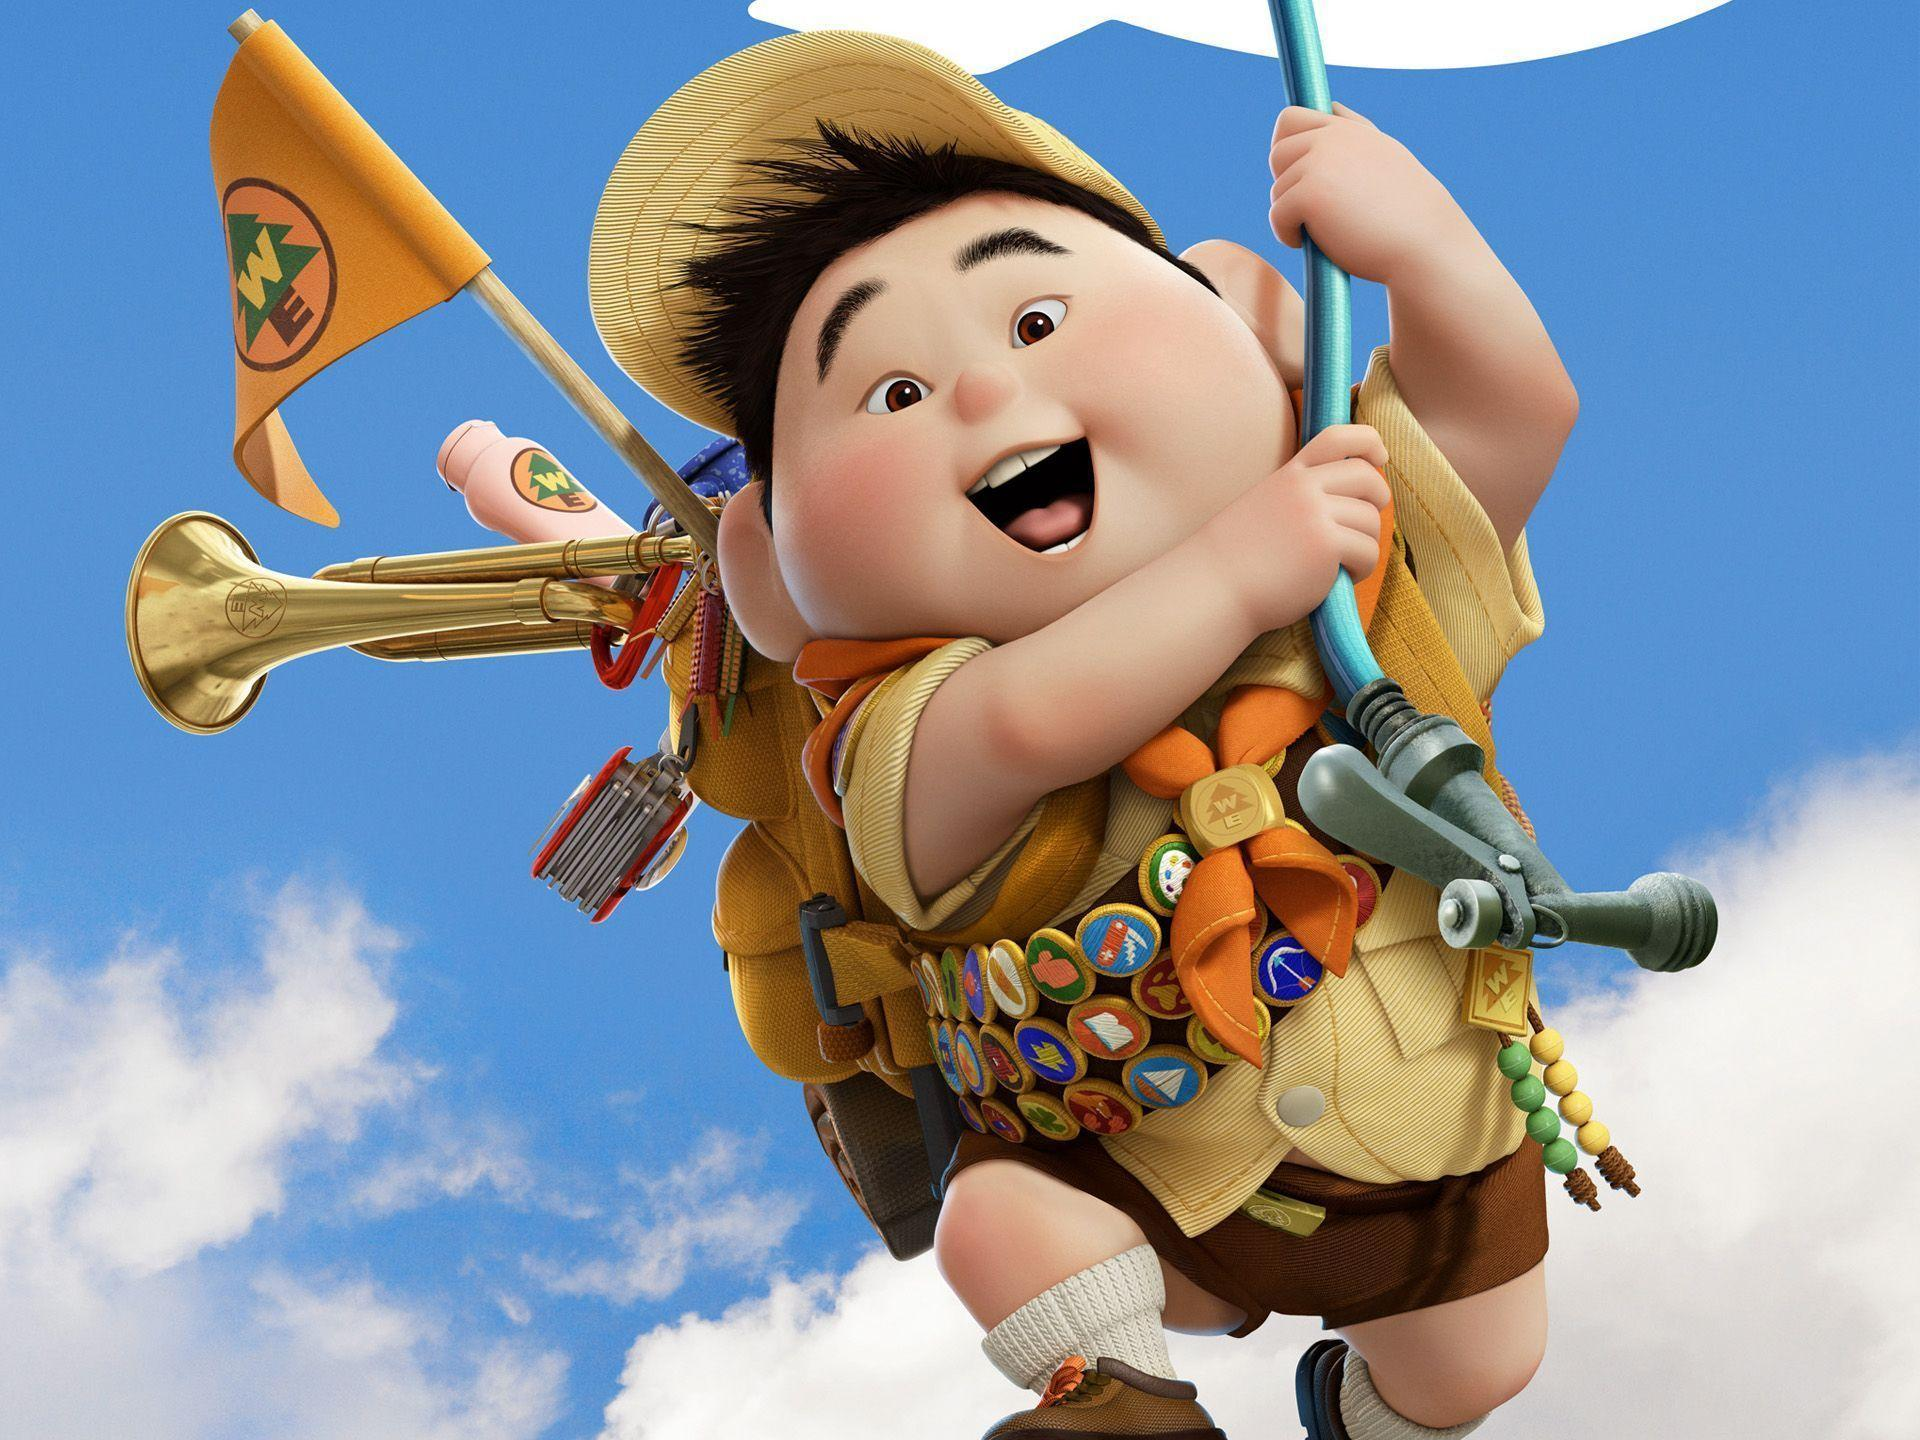 Russell Boy in Pixar's UP Wallpapers | HD Wallpapers